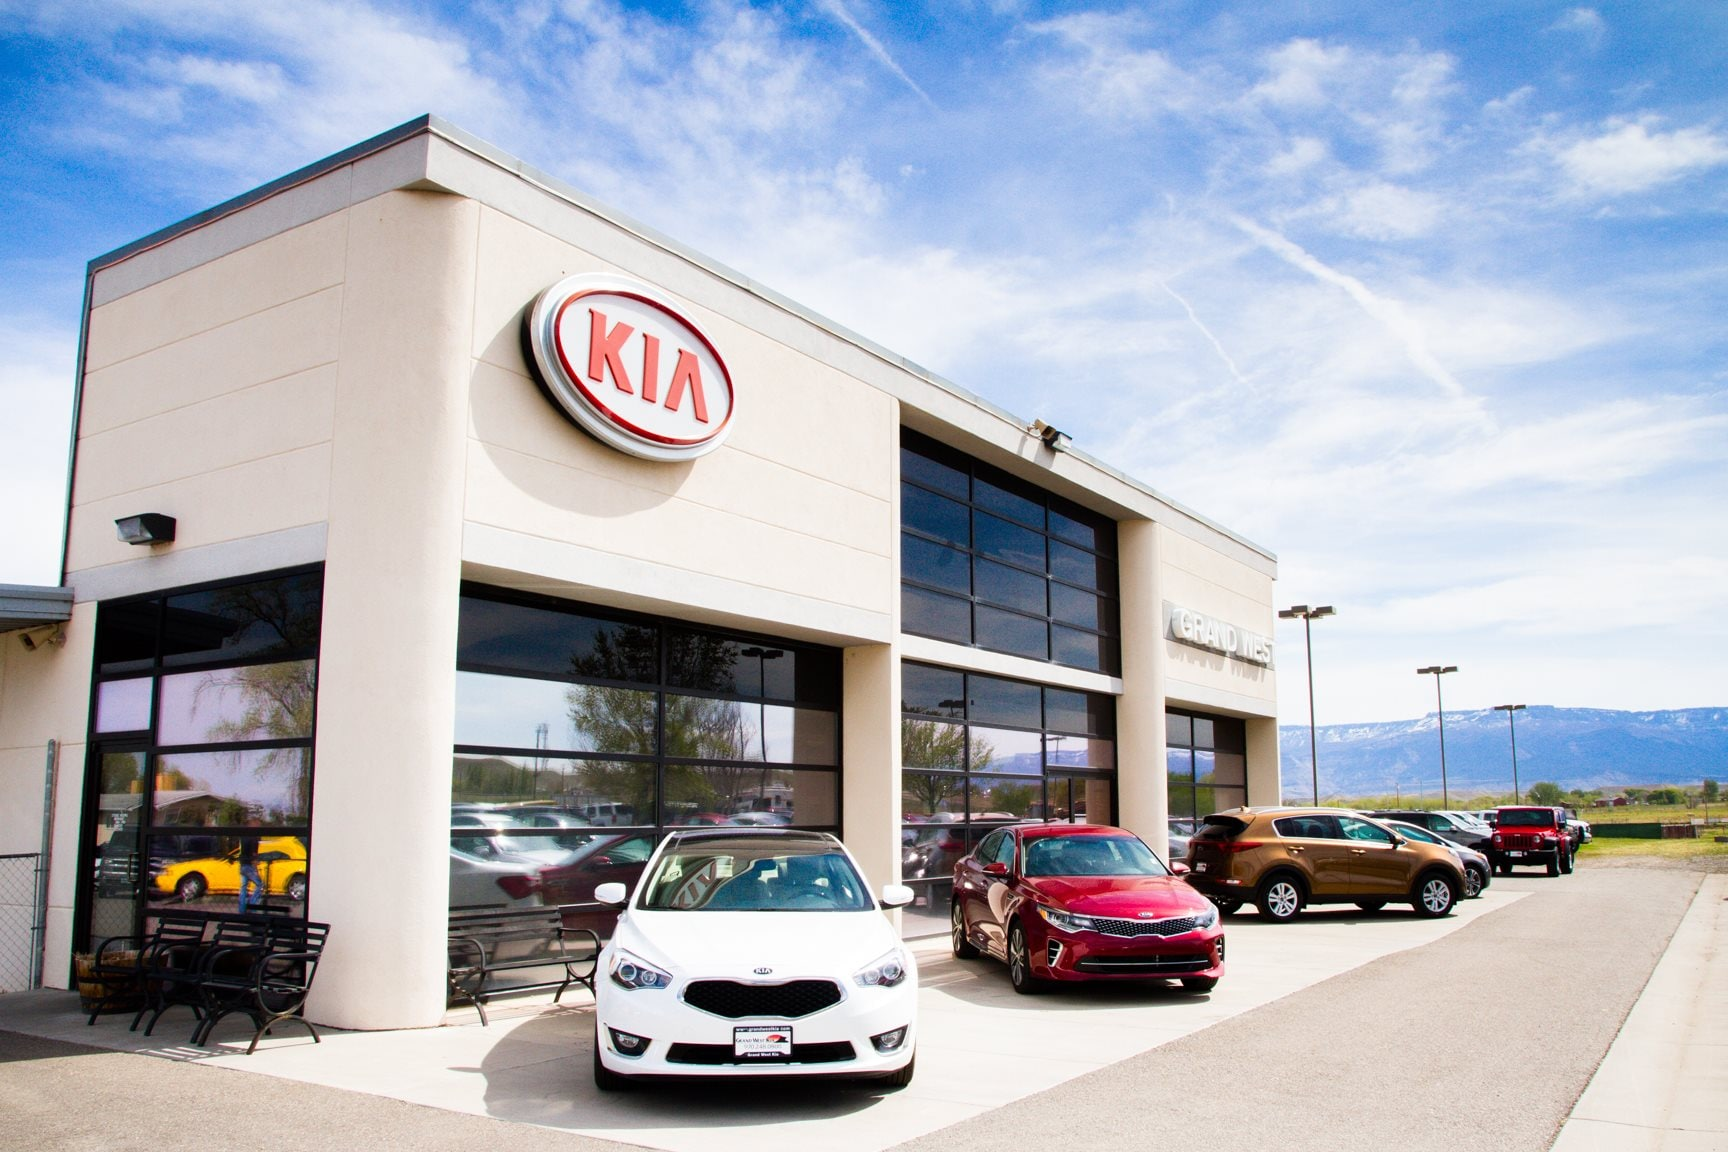 grand west kia new kia dealership in grand junction co 81503. Black Bedroom Furniture Sets. Home Design Ideas